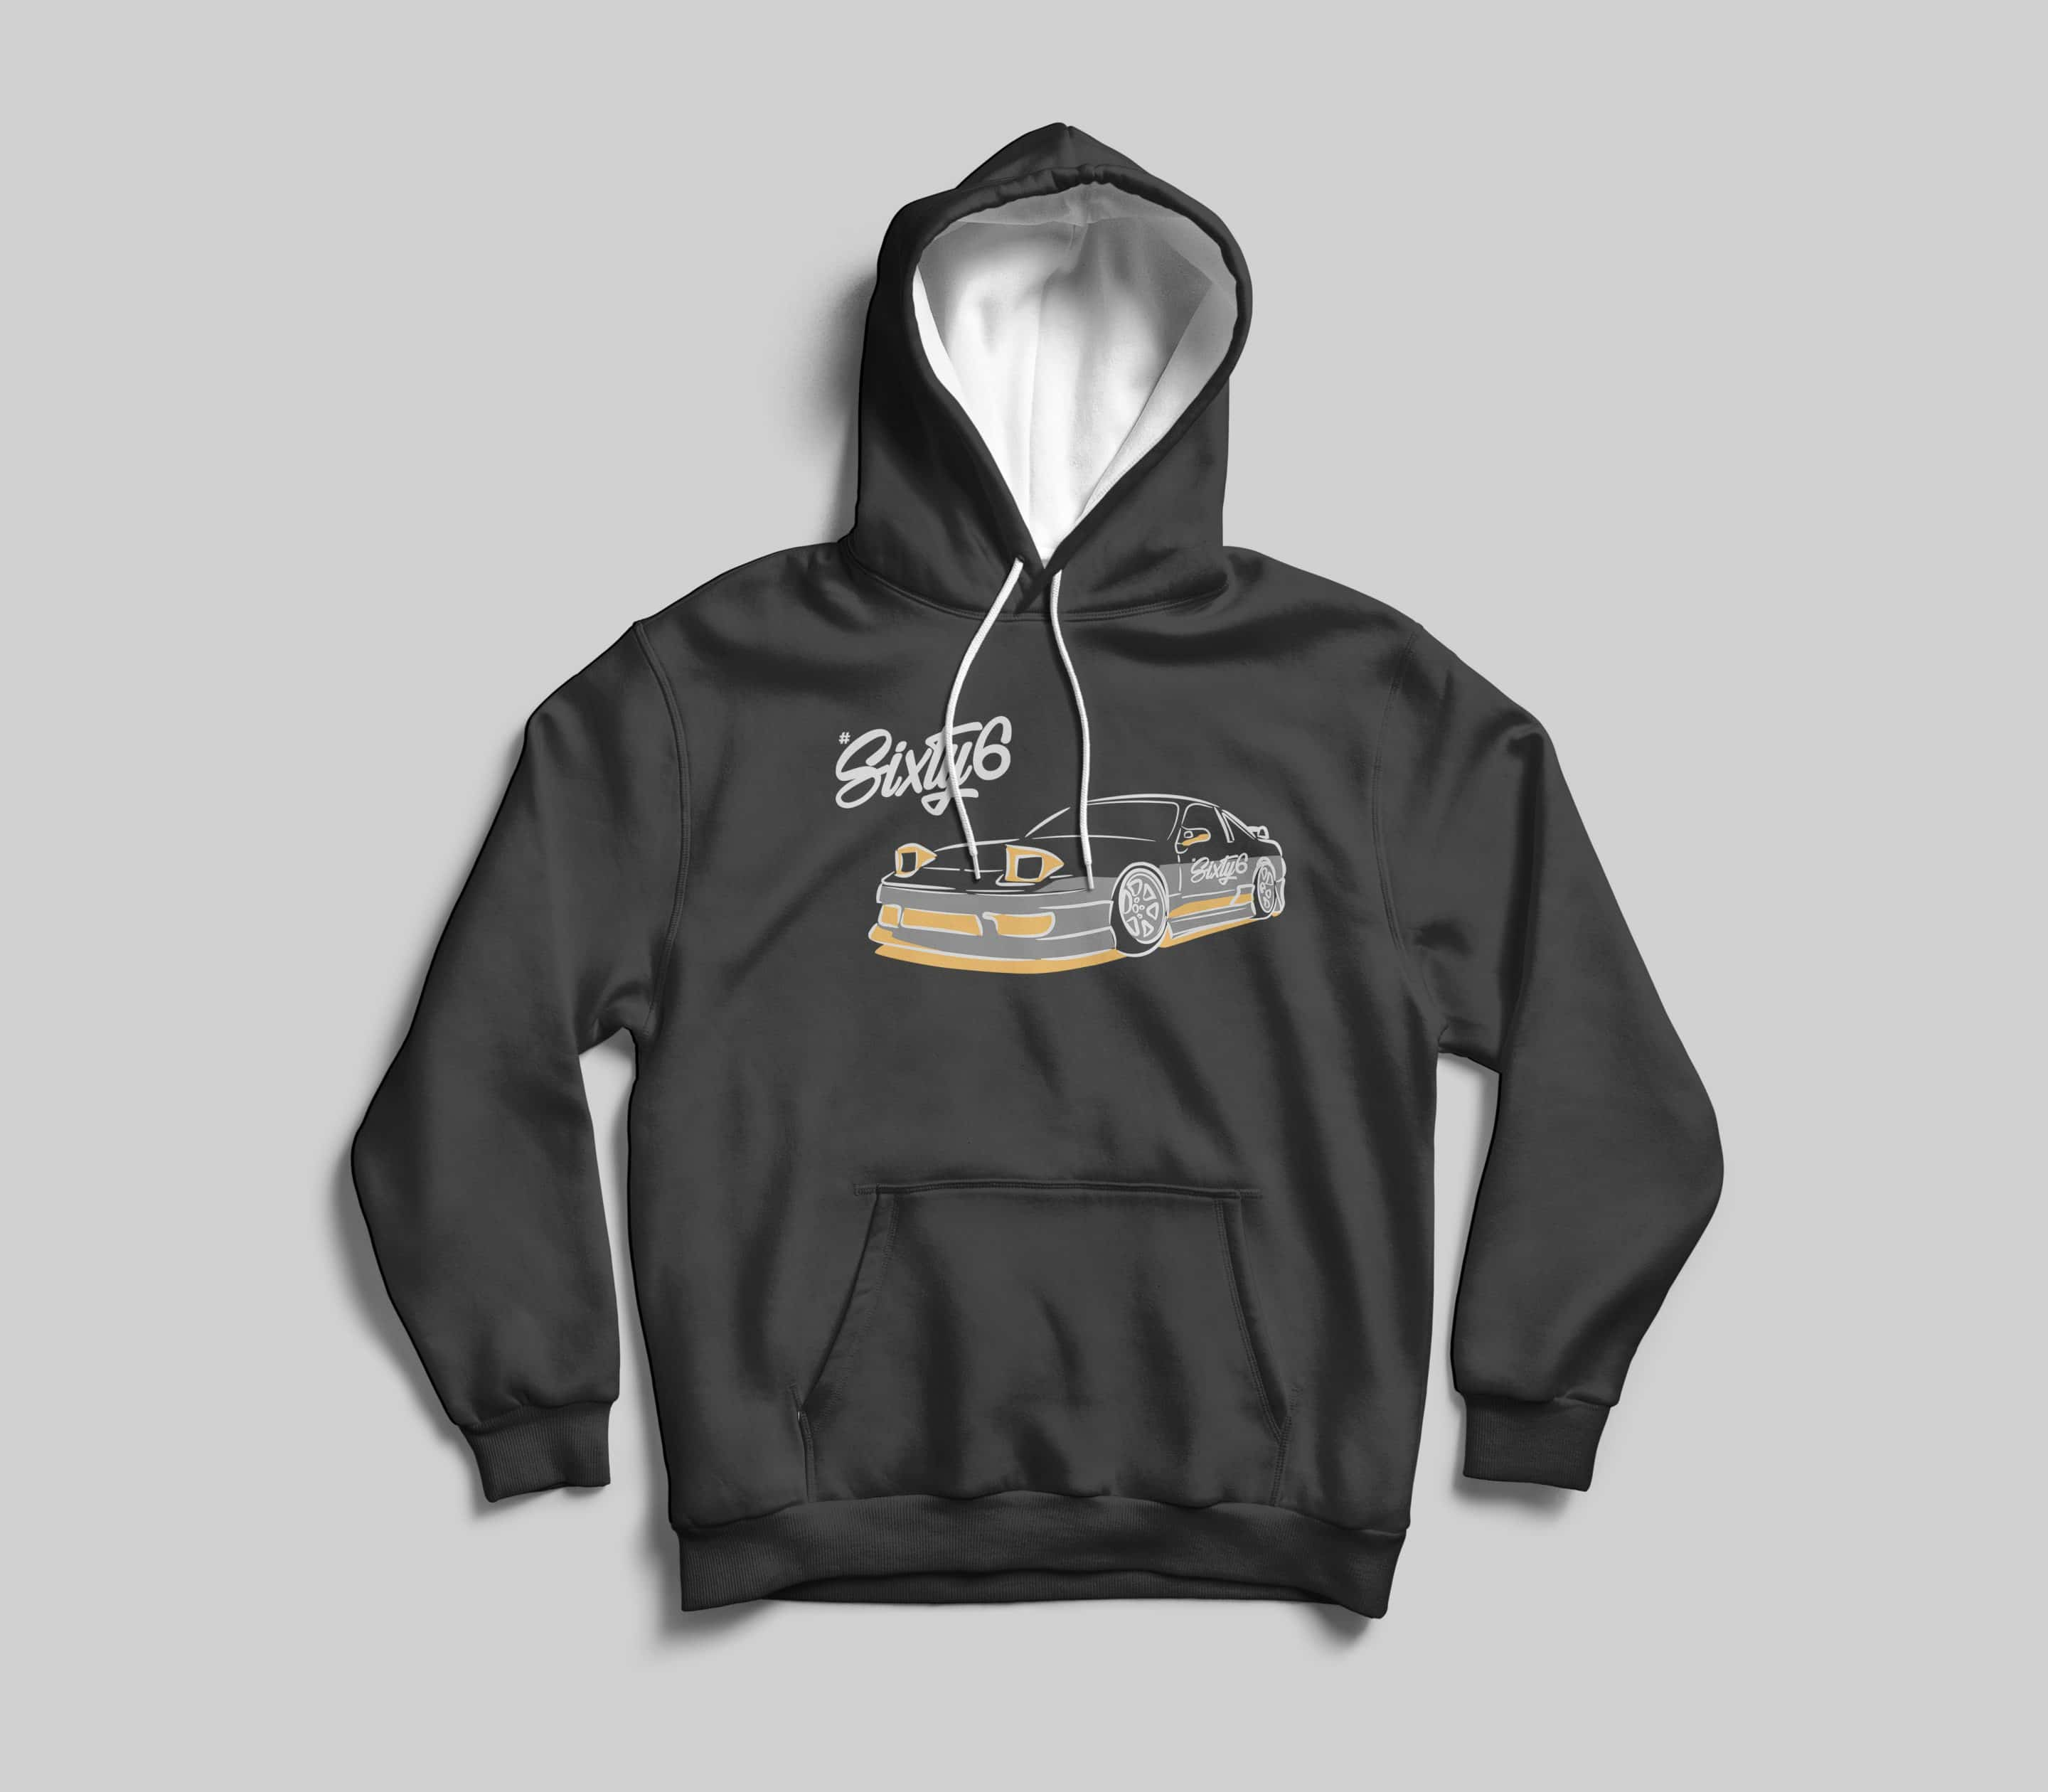 hashtag sixty six illustrated car graphic on black hoodie